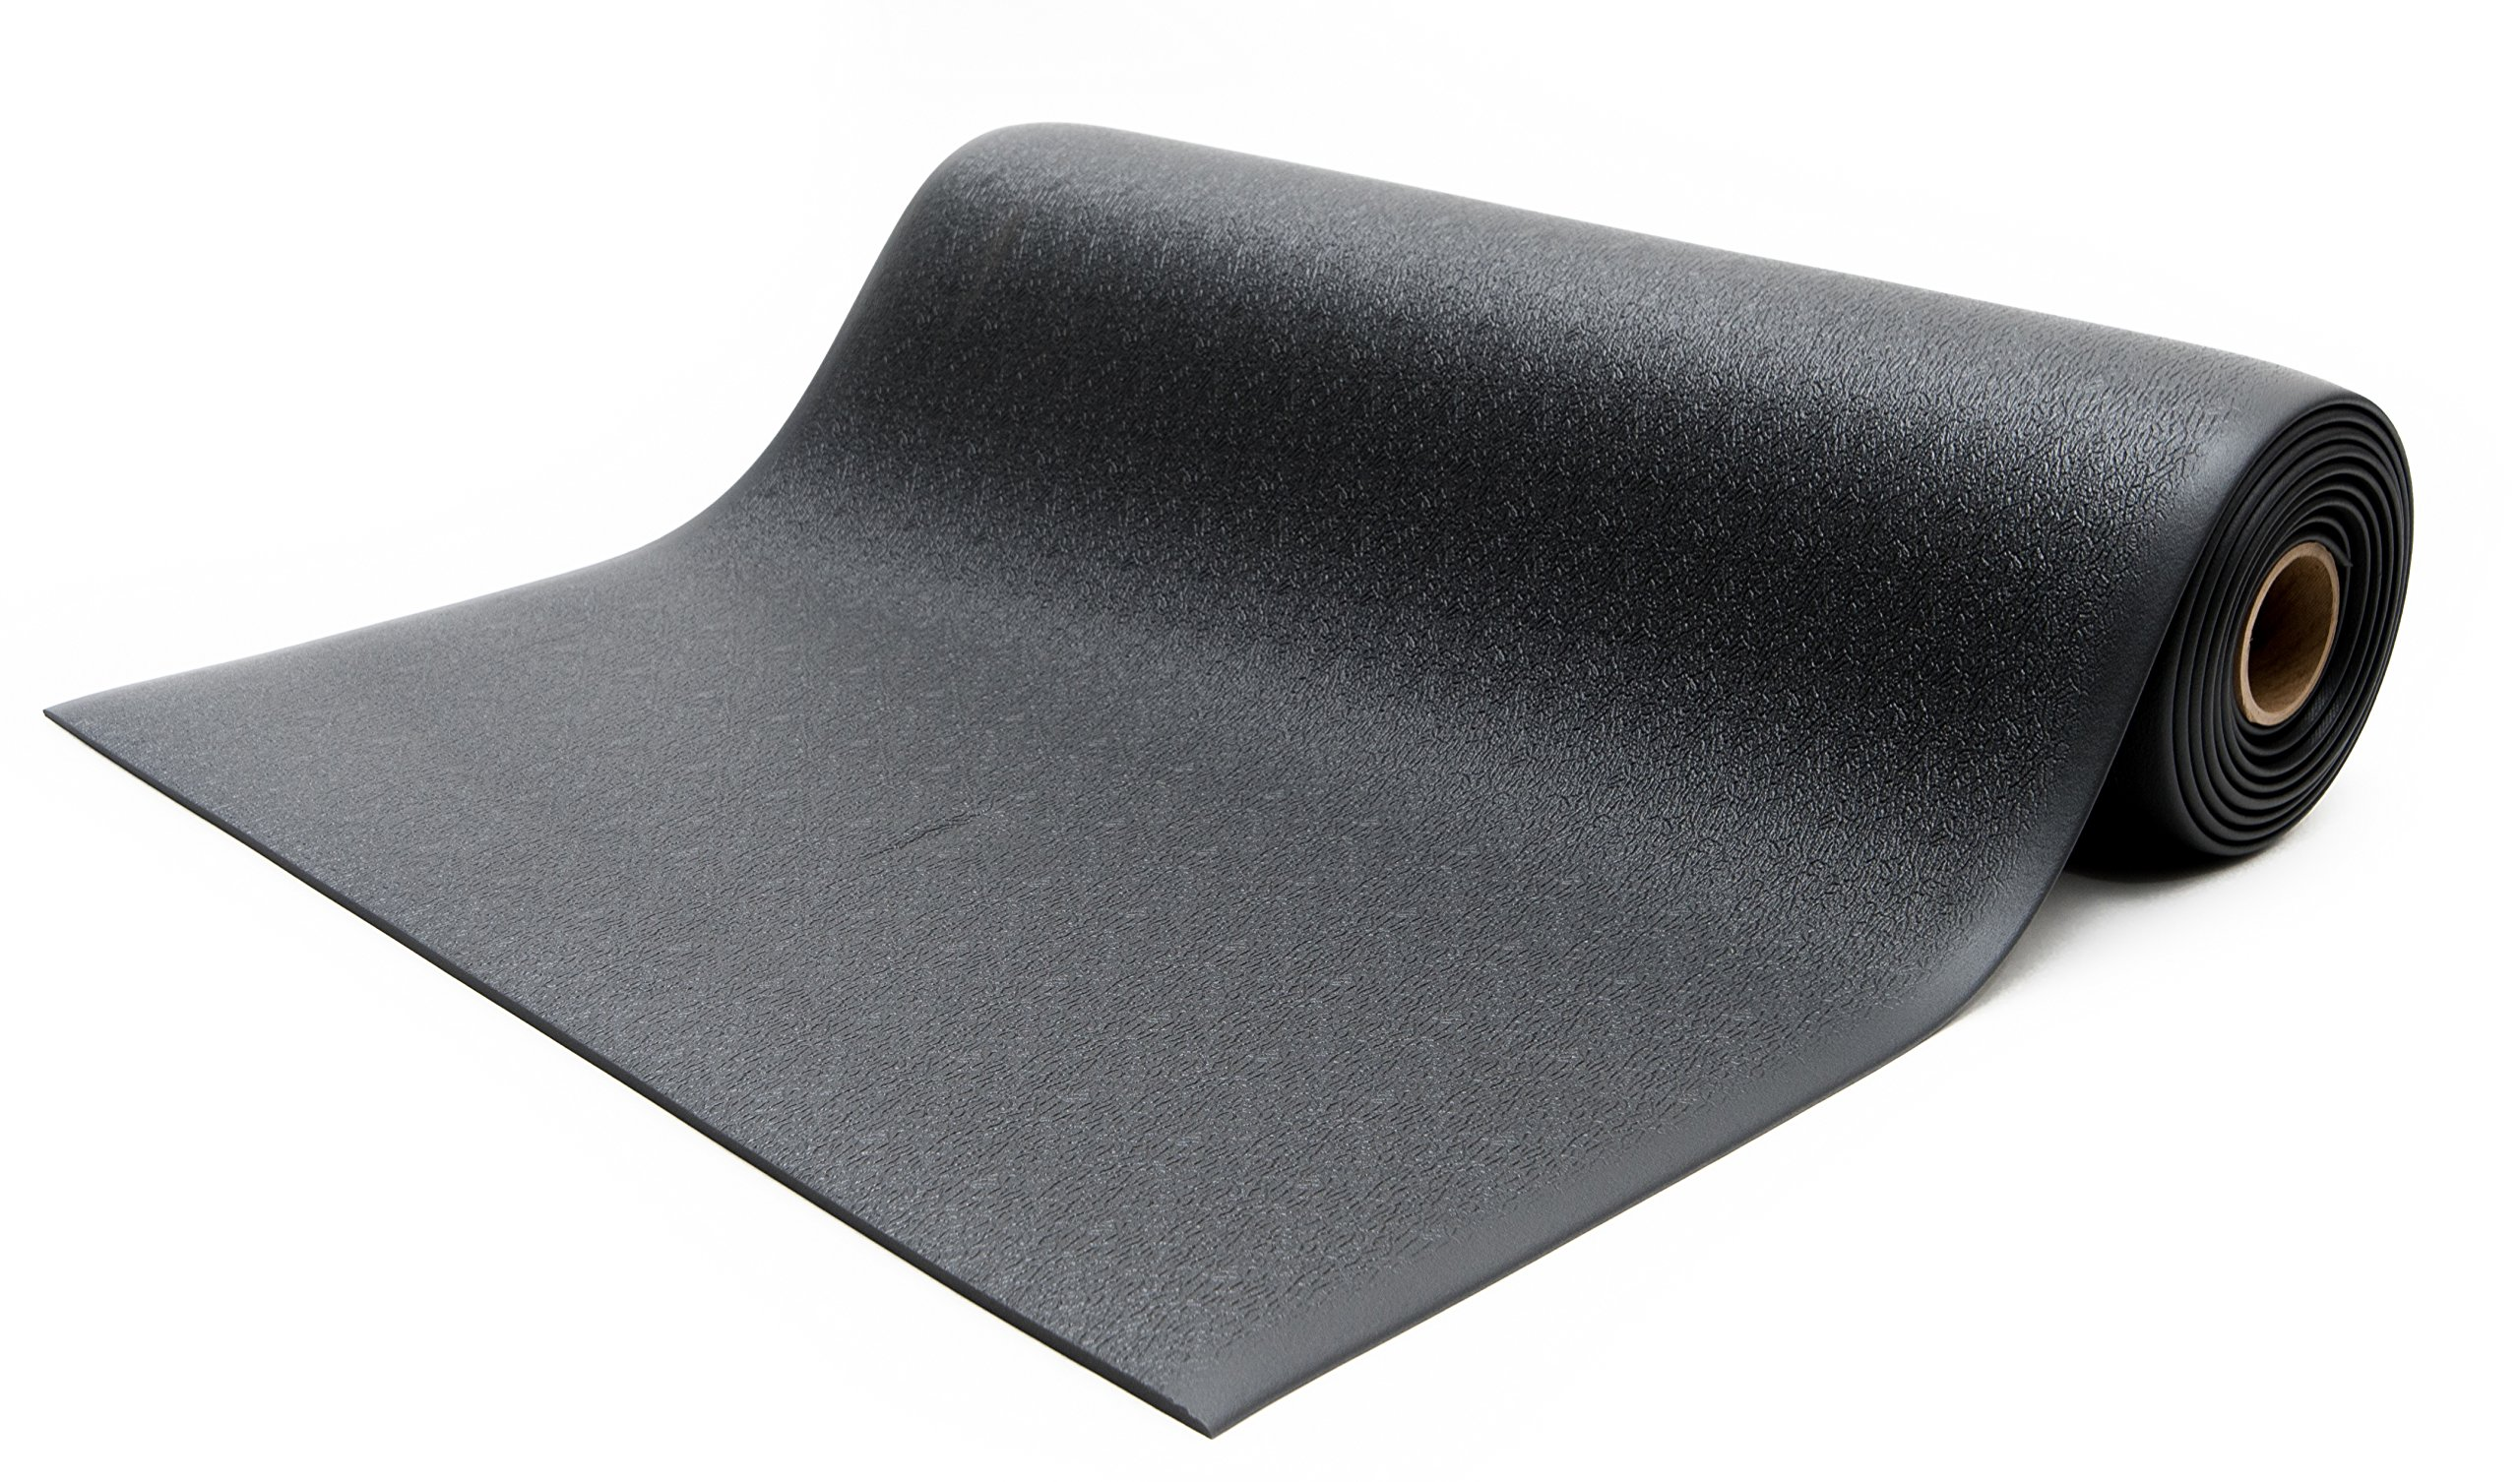 Bertech Anti Fatigue Vinyl Foam Floor Mat, 3' Wide x 15' Long x 3/8'' Thick, Textured Pattern, Black (Made in USA)